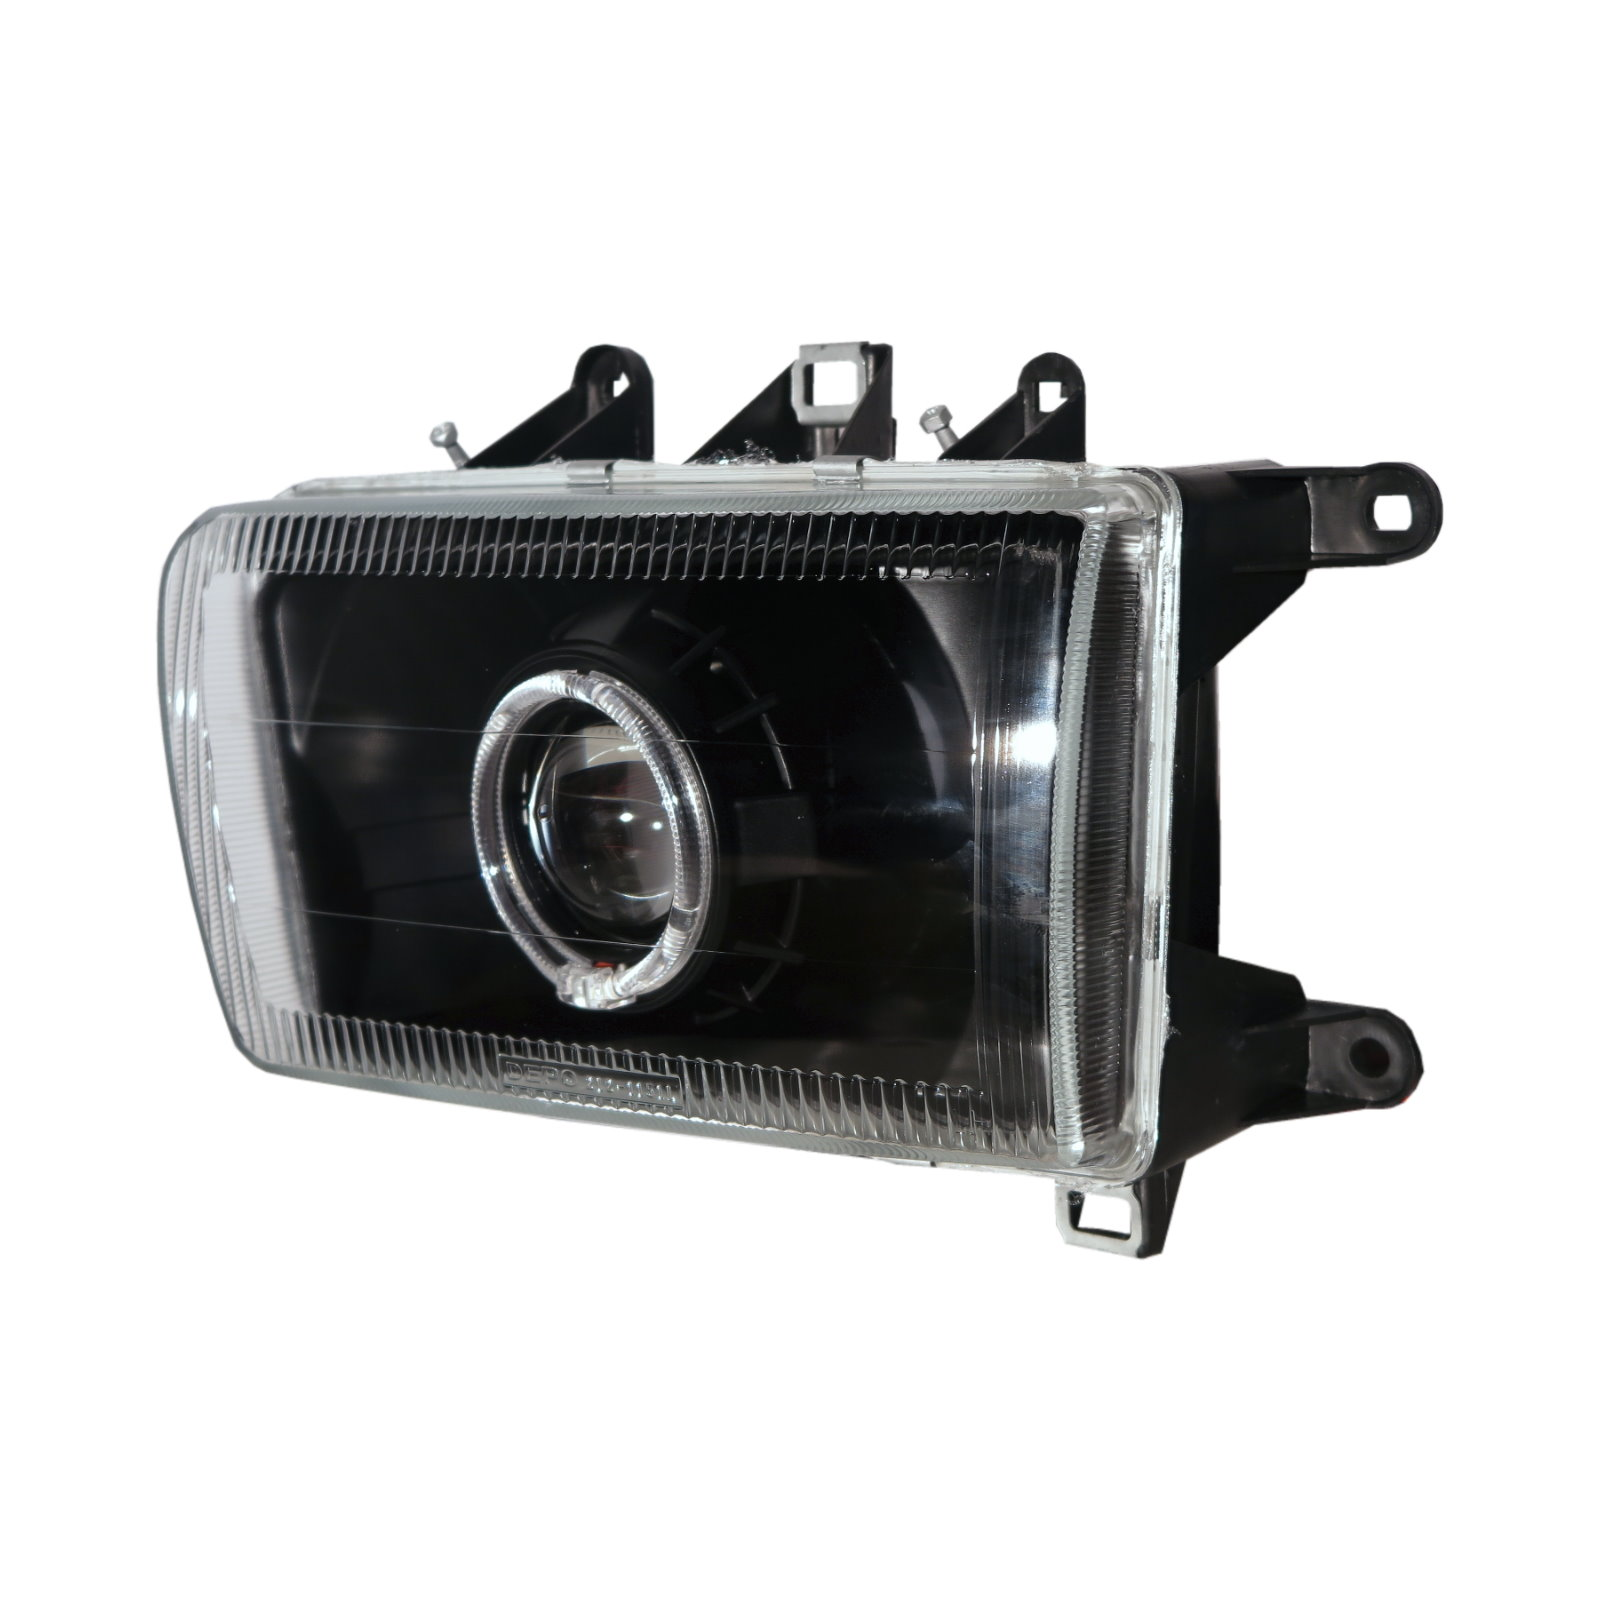 thumbnail 2 - Safe 02-03 Wagon Guide LED Angel-Eye Projector Headlight BK for Great Wall LHD